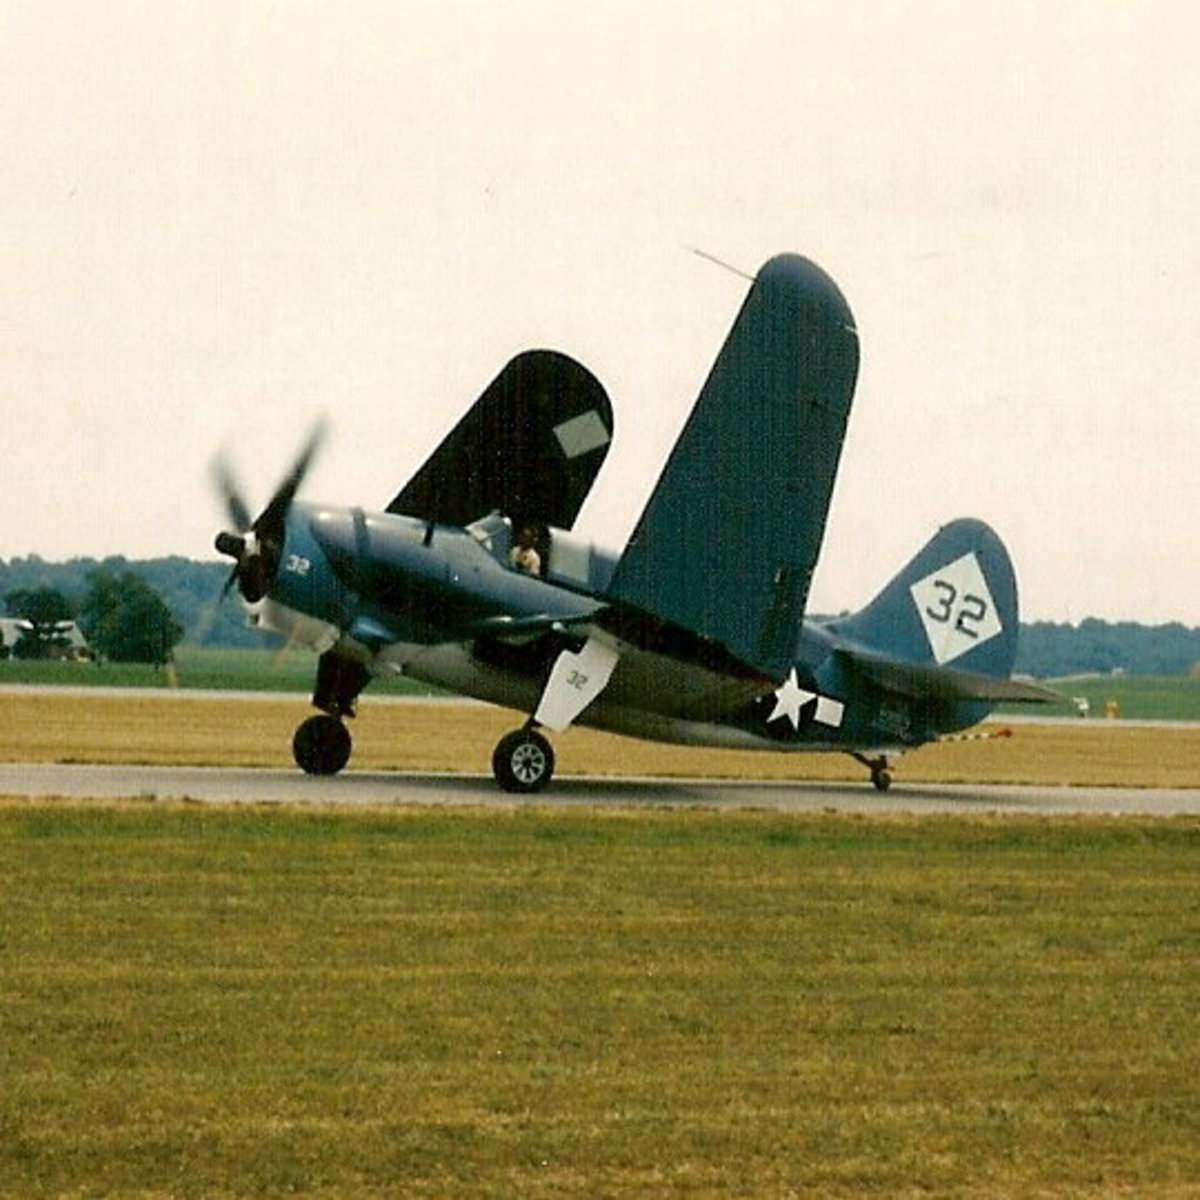 A Commemorative Air Force TBF Avenger.